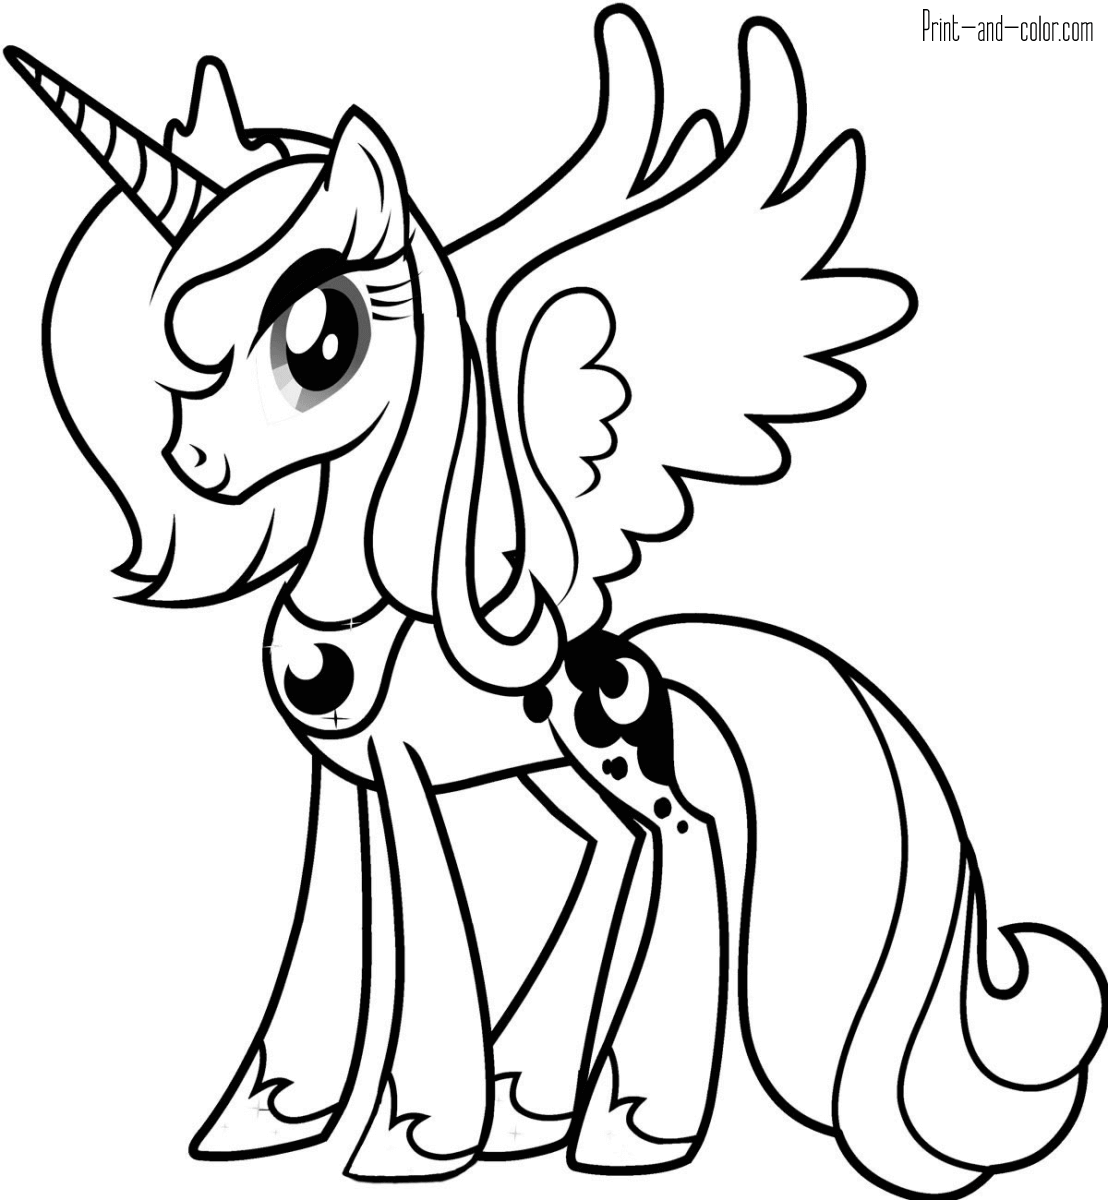 pony picture to color cute pony coloring page wecoloringpagecom color pony to picture